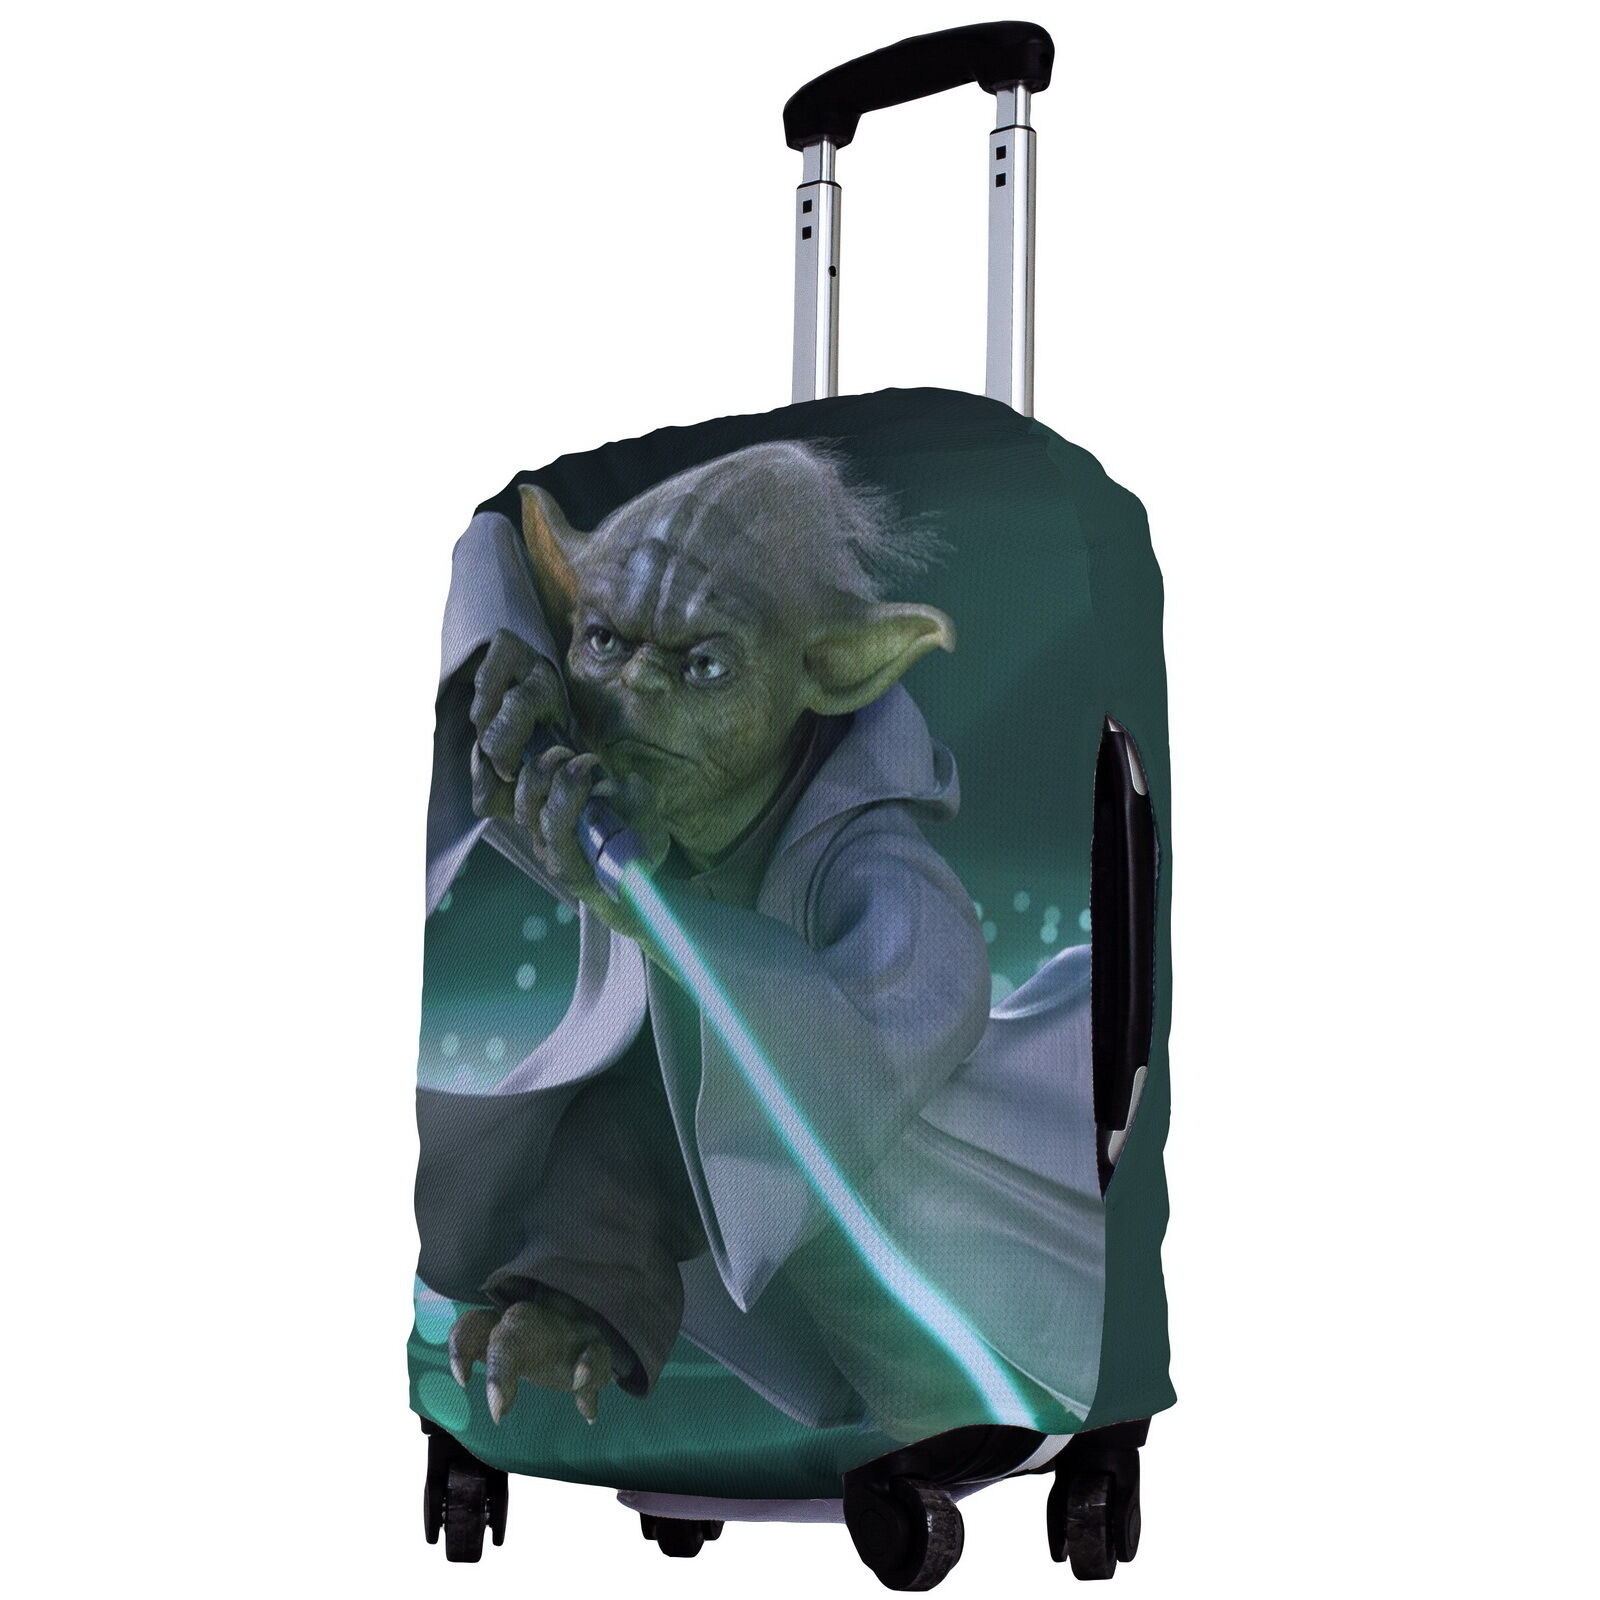 Yoda Disney Star Wars Suitcase Cover